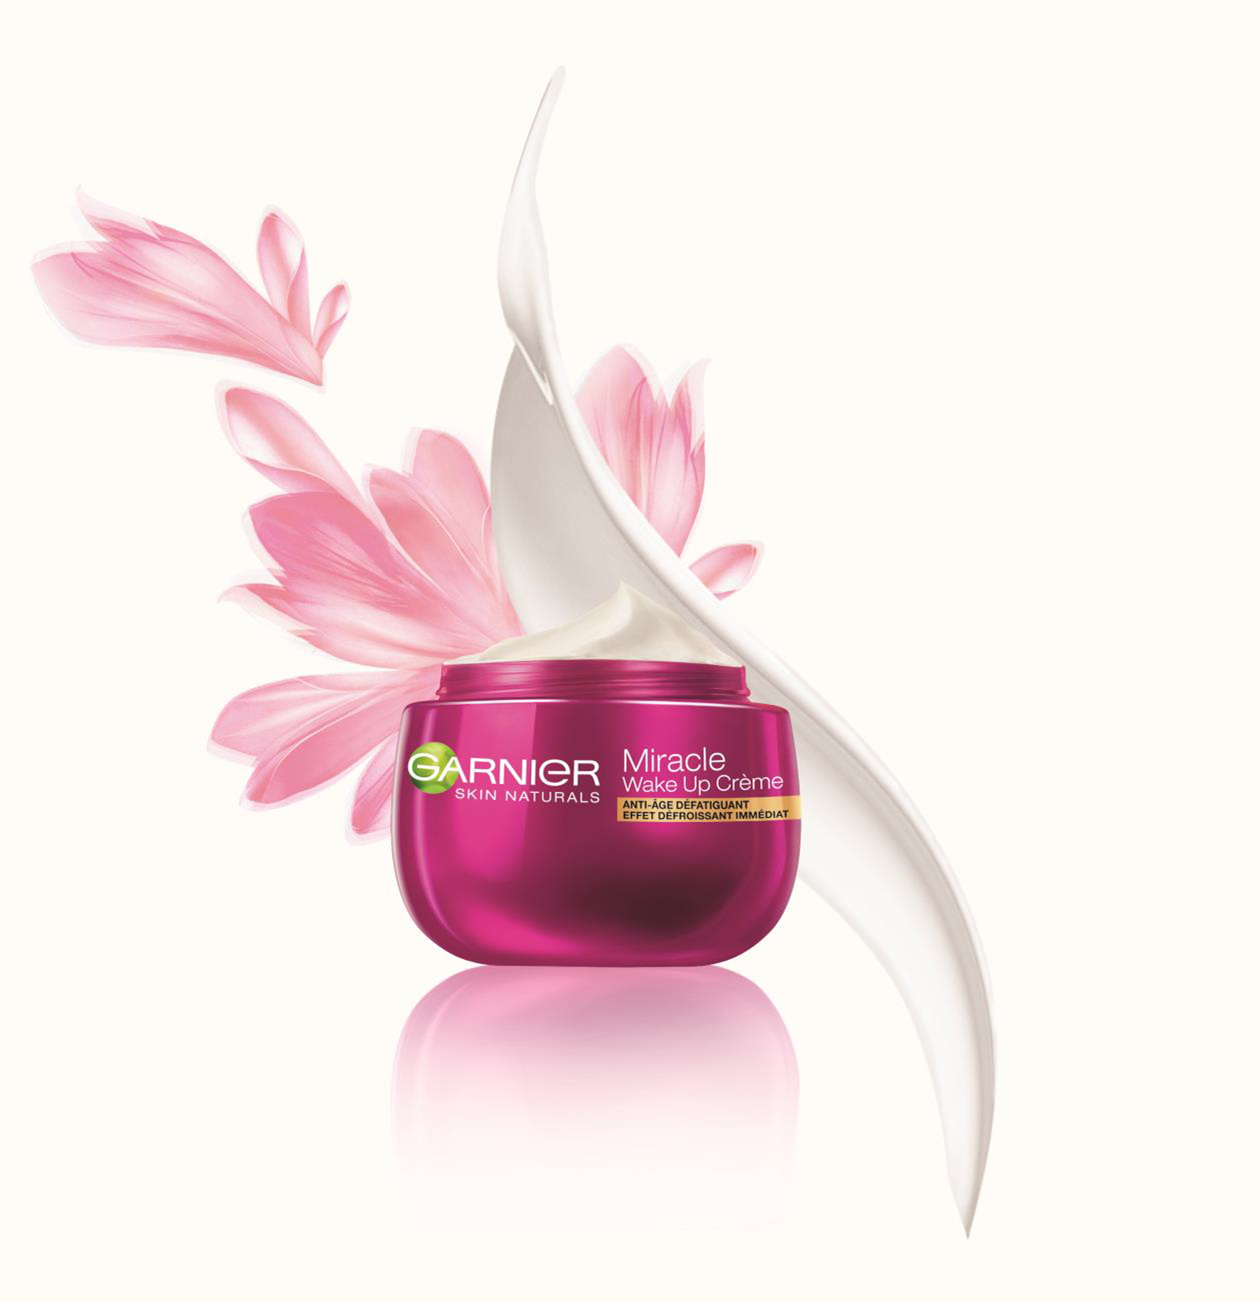 Новинка от Garnier Miracle wake-up cream.